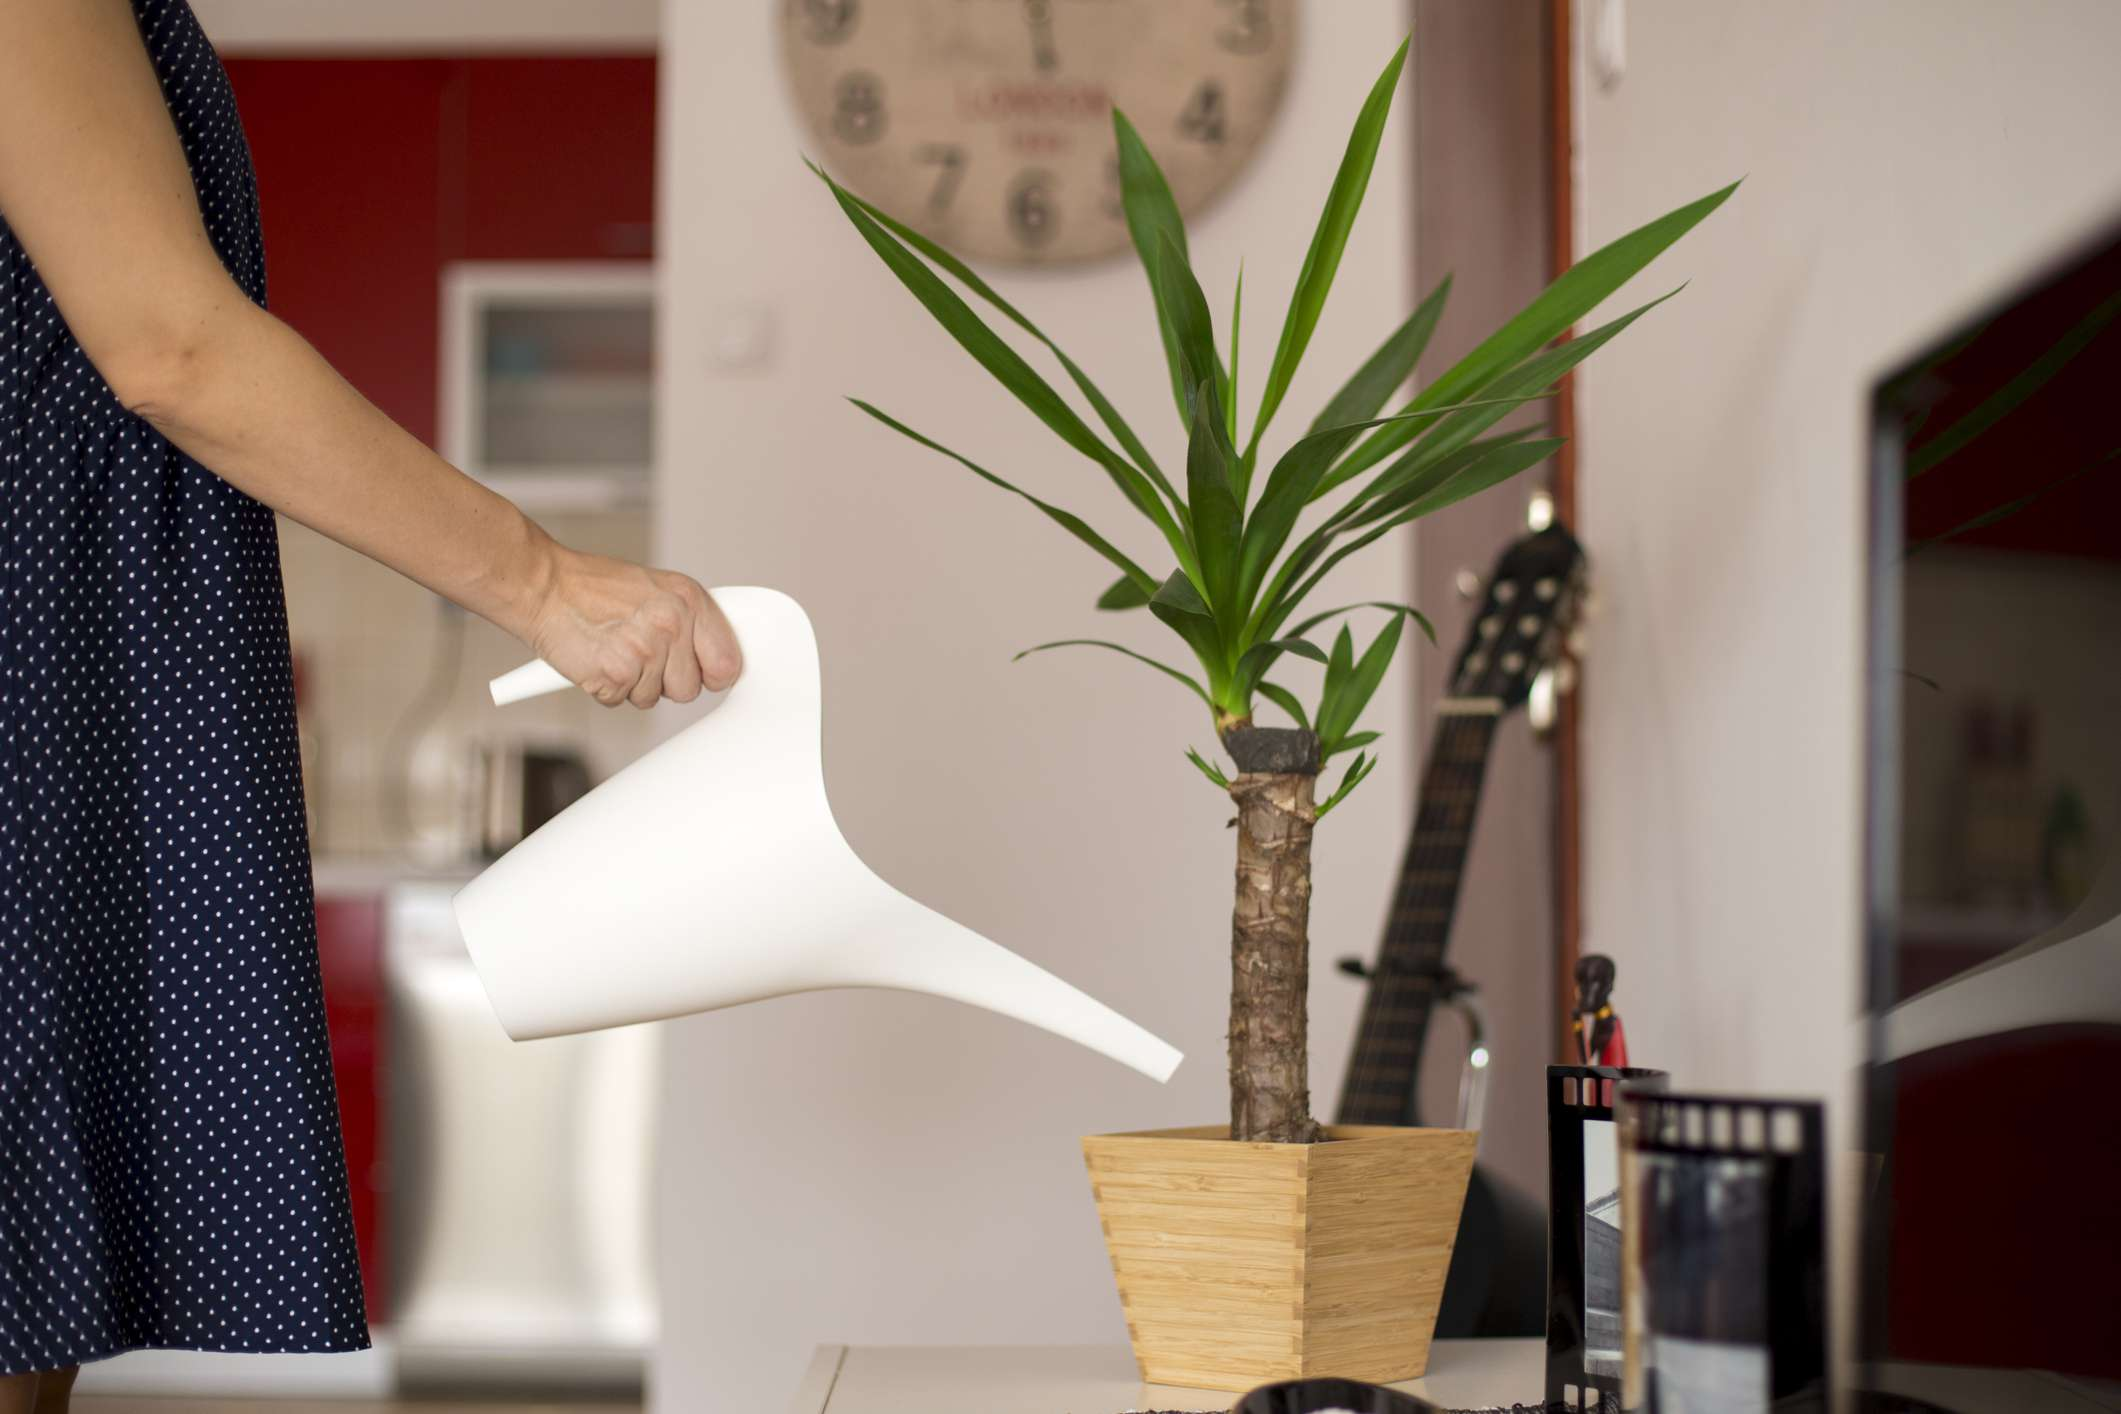 women waters indoor yucca (Yucca elephantipes) plant with white watering can